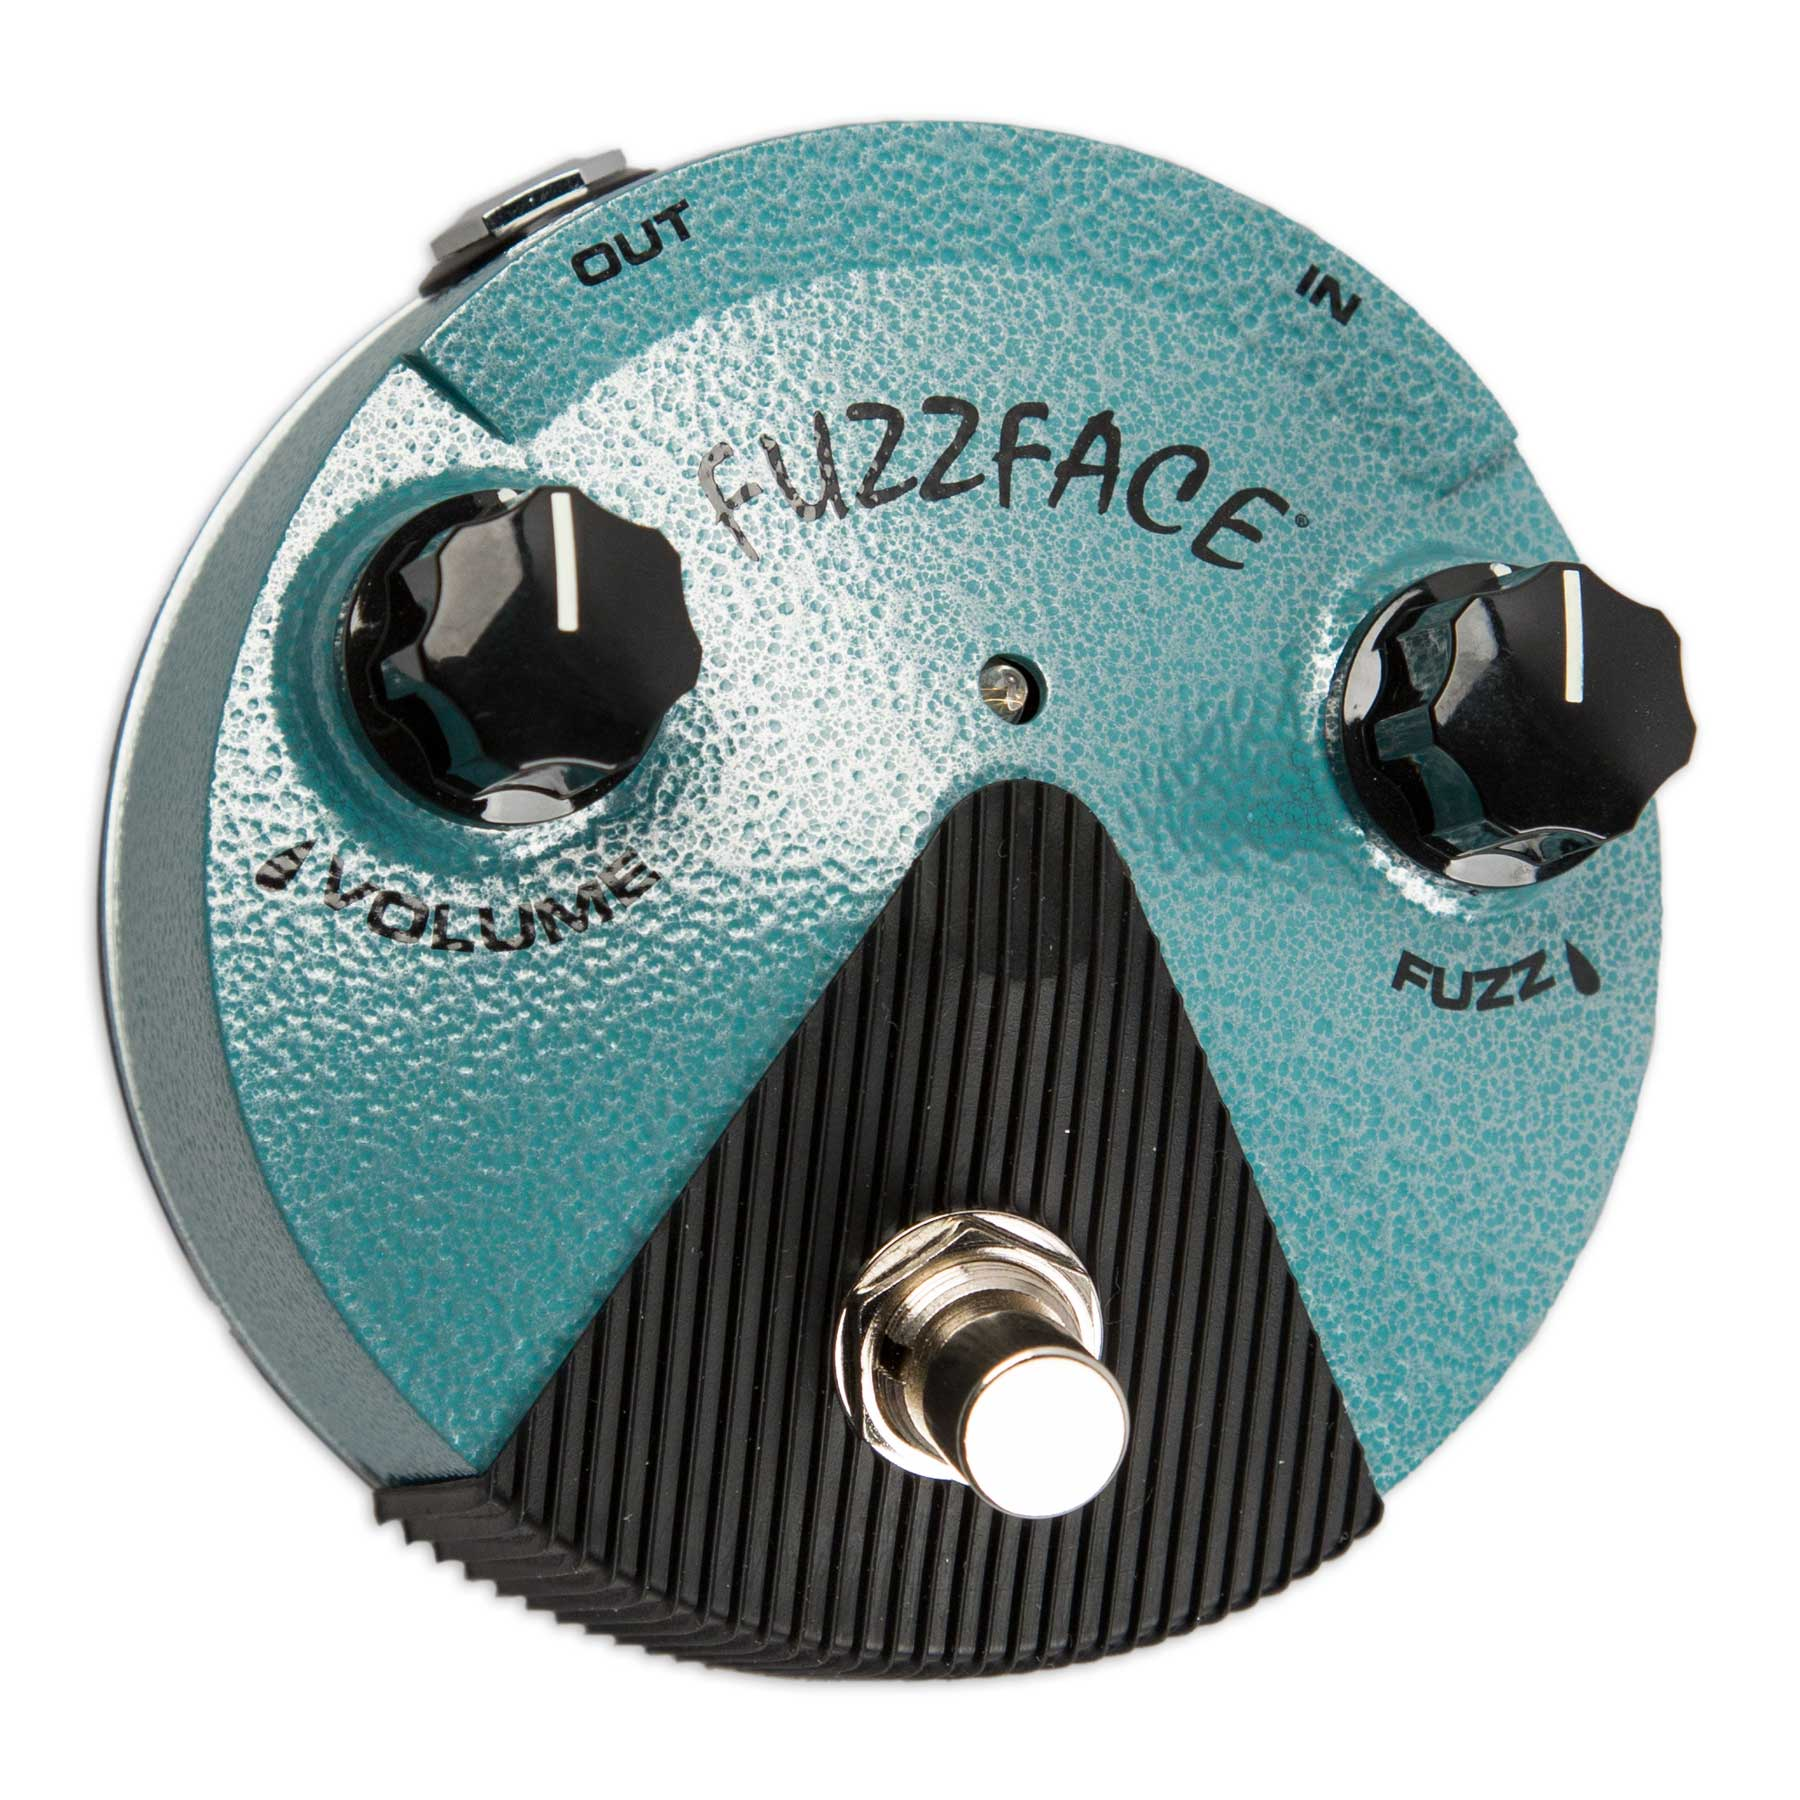 USED DUNLOP JIMI HENDRIX FUZZ FACE FFM3 WITH BOX